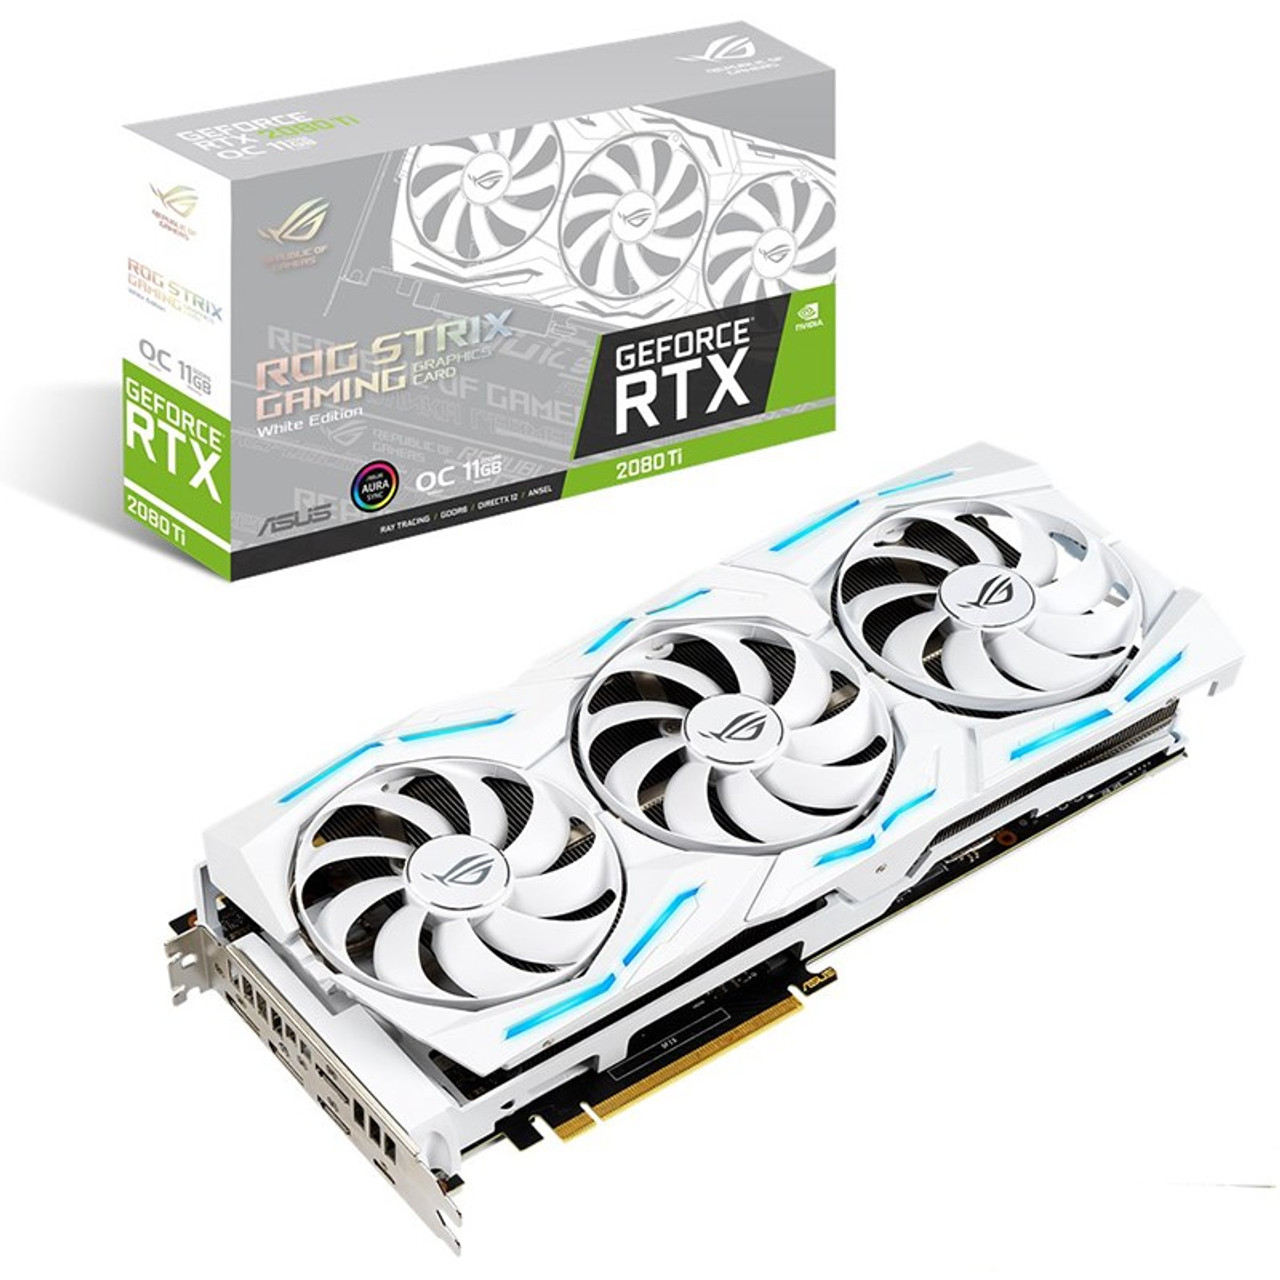 Image for Asus GeForce RTX 2080 Ti ROG Strix OC 11GB Video Card - White Edition CX Computer Superstore